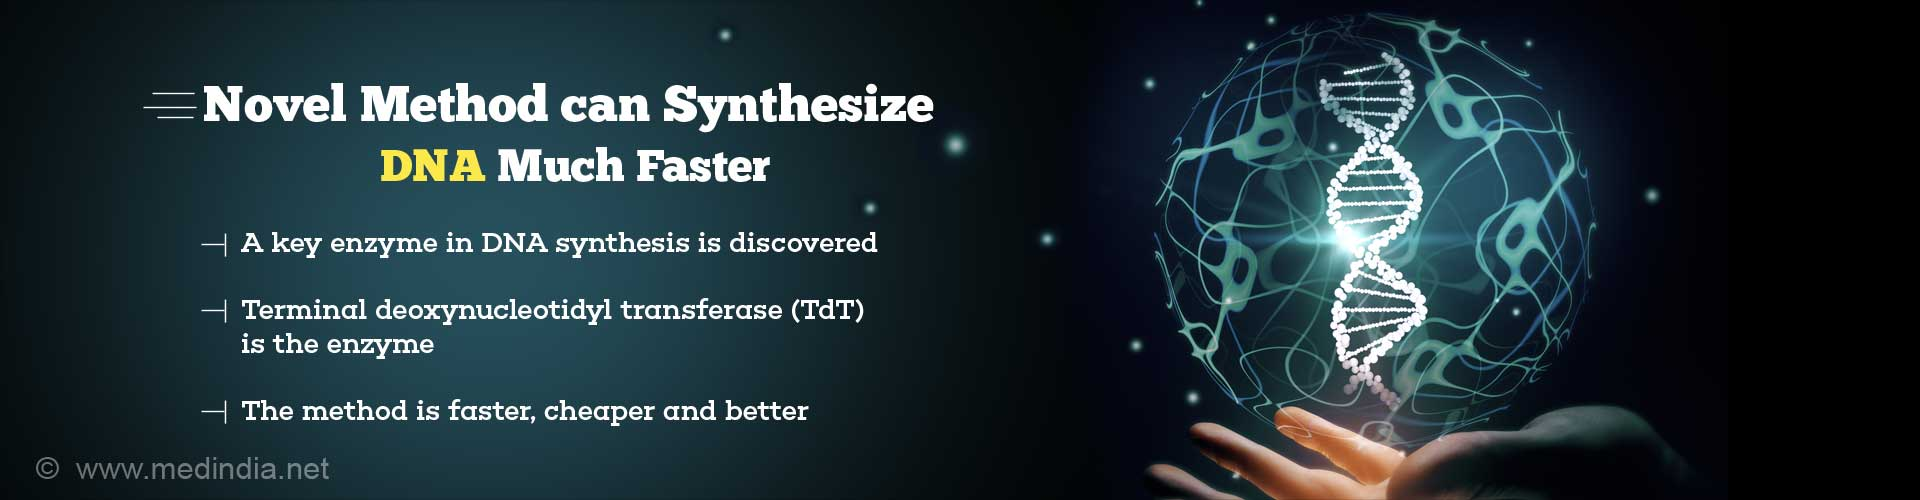 Novel method can synthesize DNA much faster. A key enzyme in DNA synthesis is discovered. Terminal deoxynucleotidyl transferase (TdT) is the enzyme. The method is faster, cheaper and better.